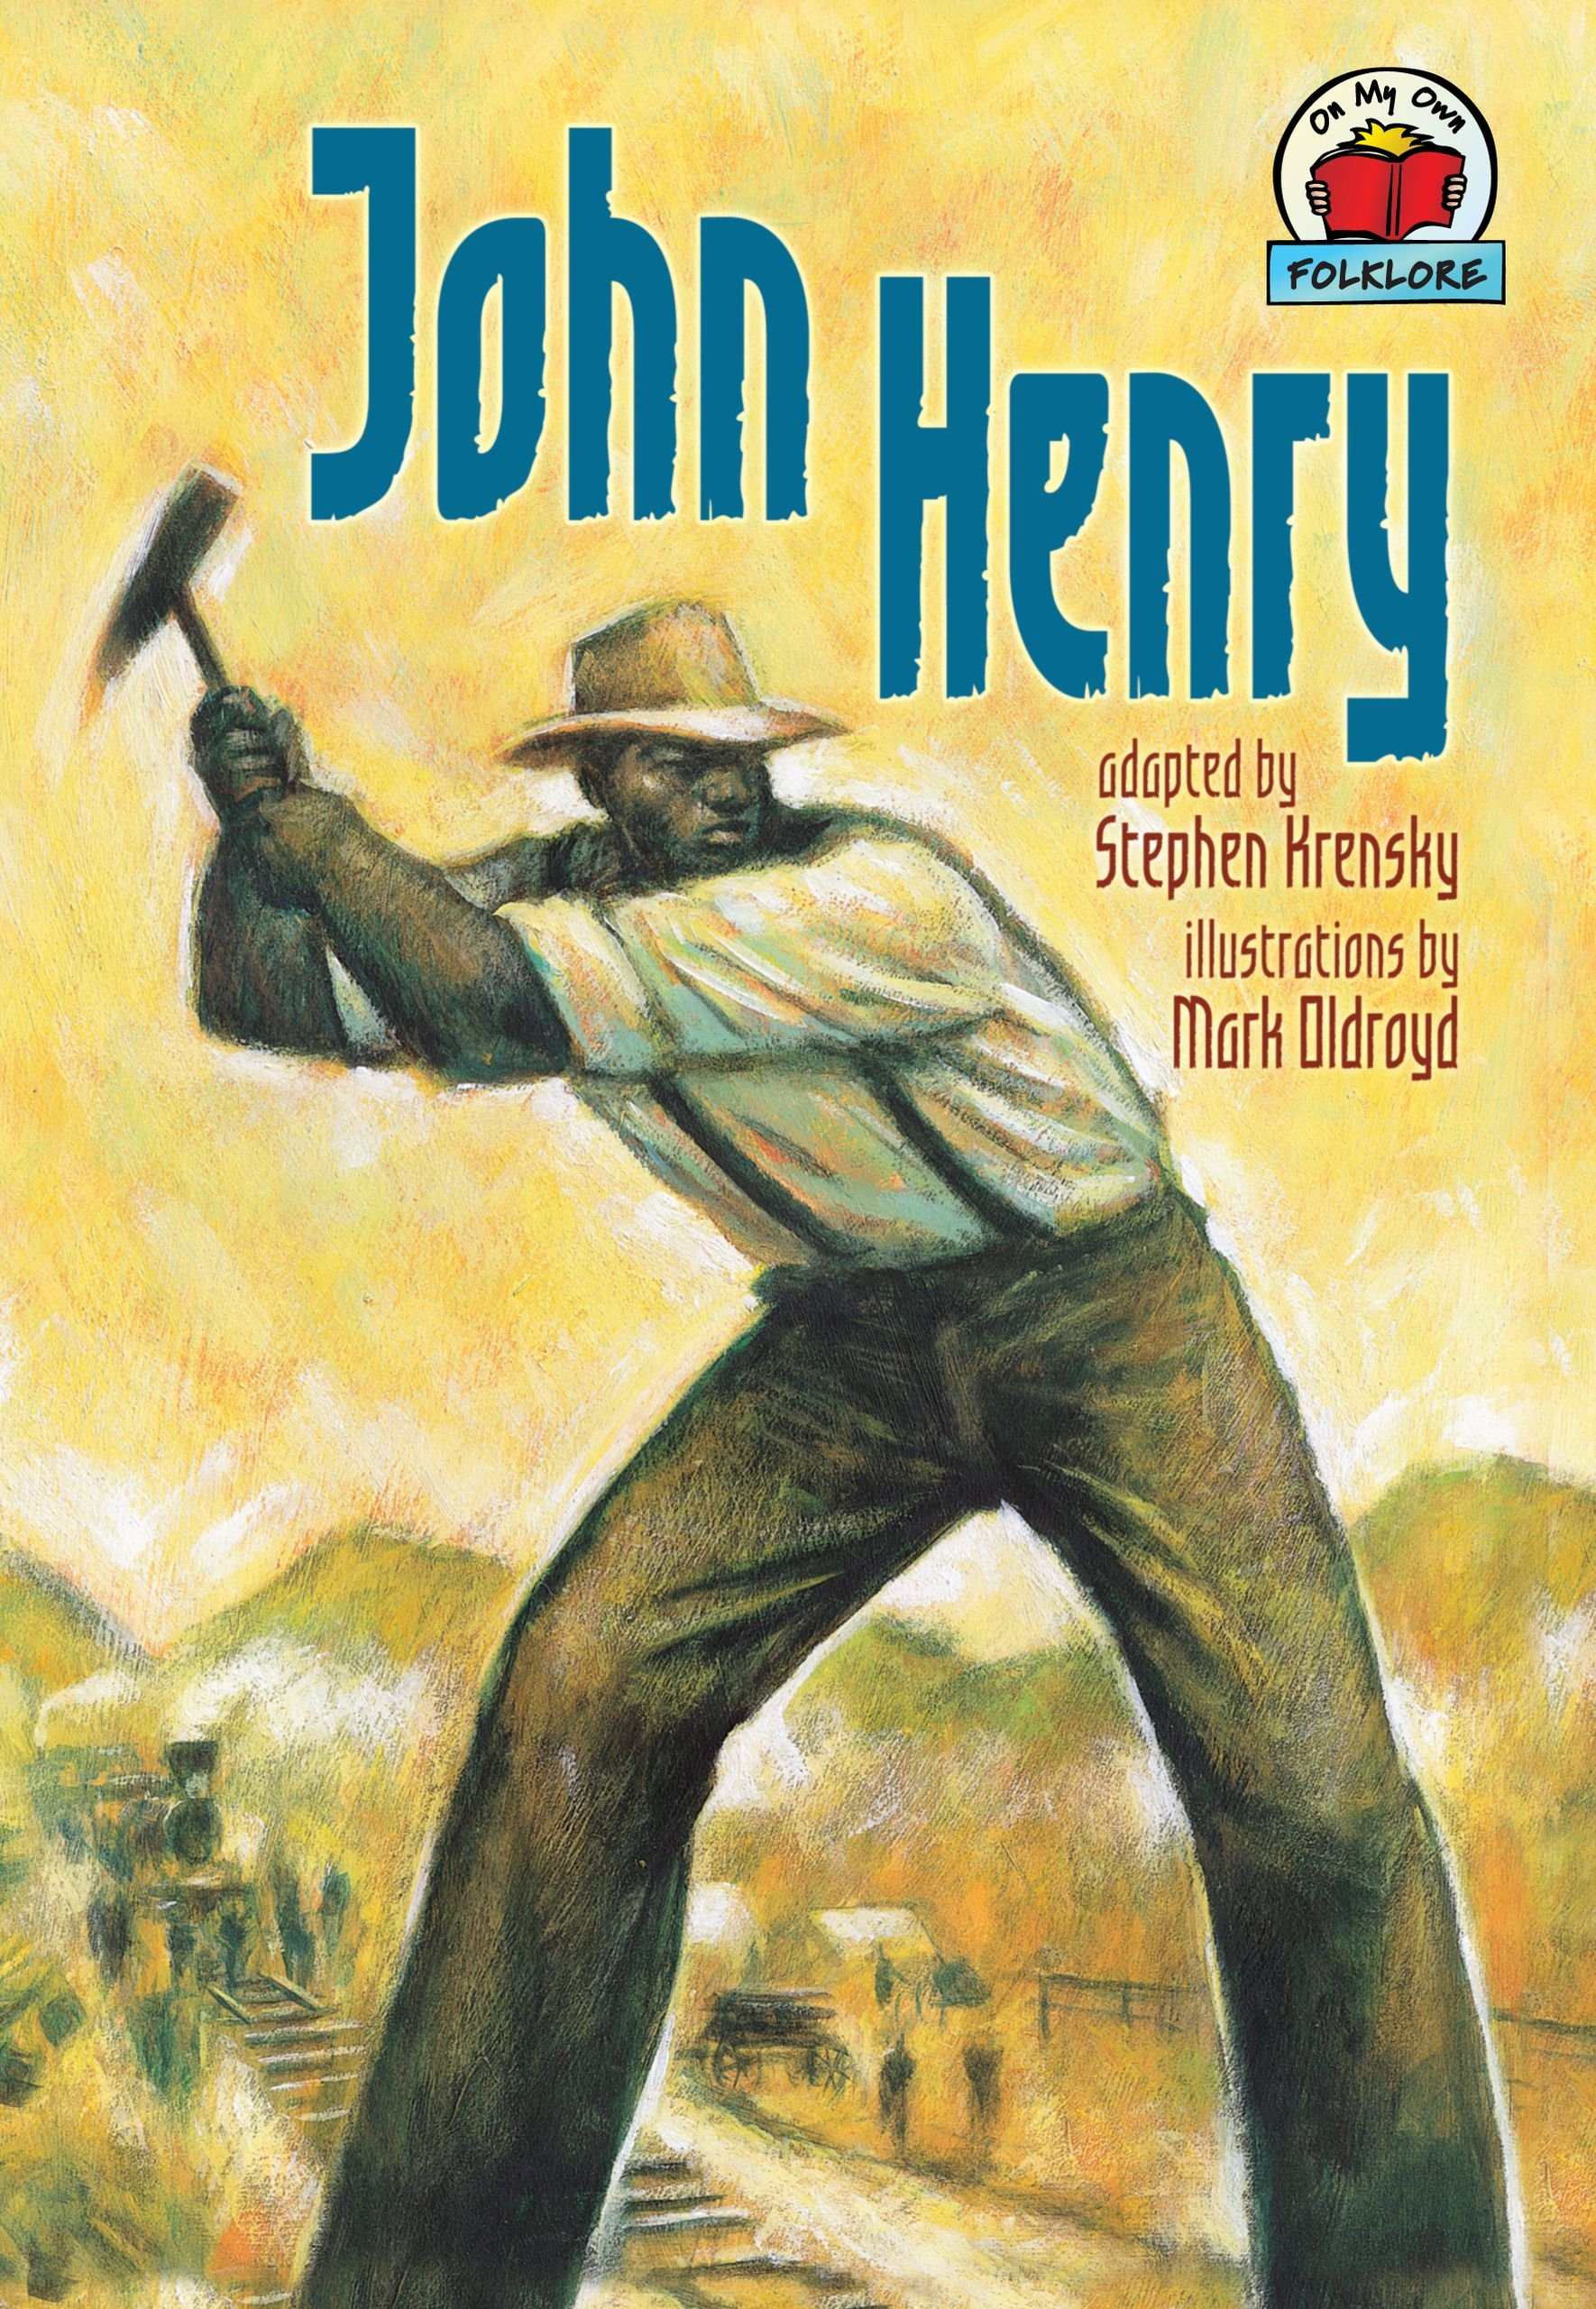 Download John Henry (On My Own Folklore) ebook